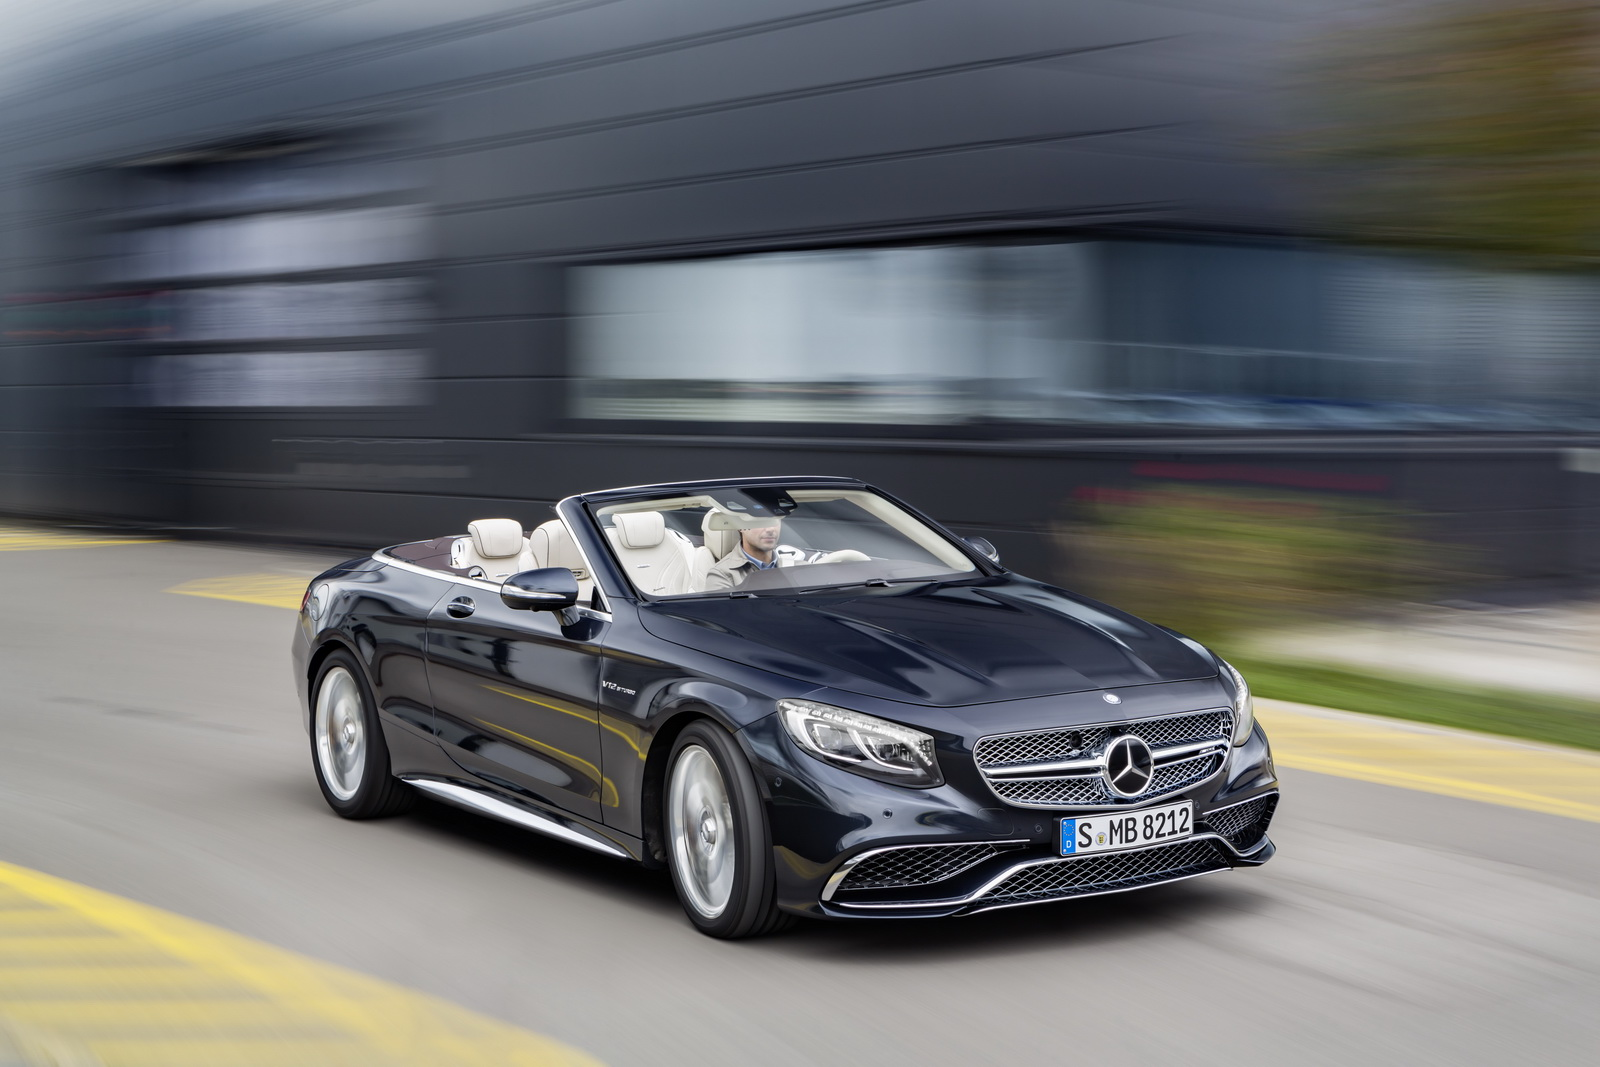 Mercedes amg s 65 cabriolet revealed car news luxury for Mercedes benz sports car amg